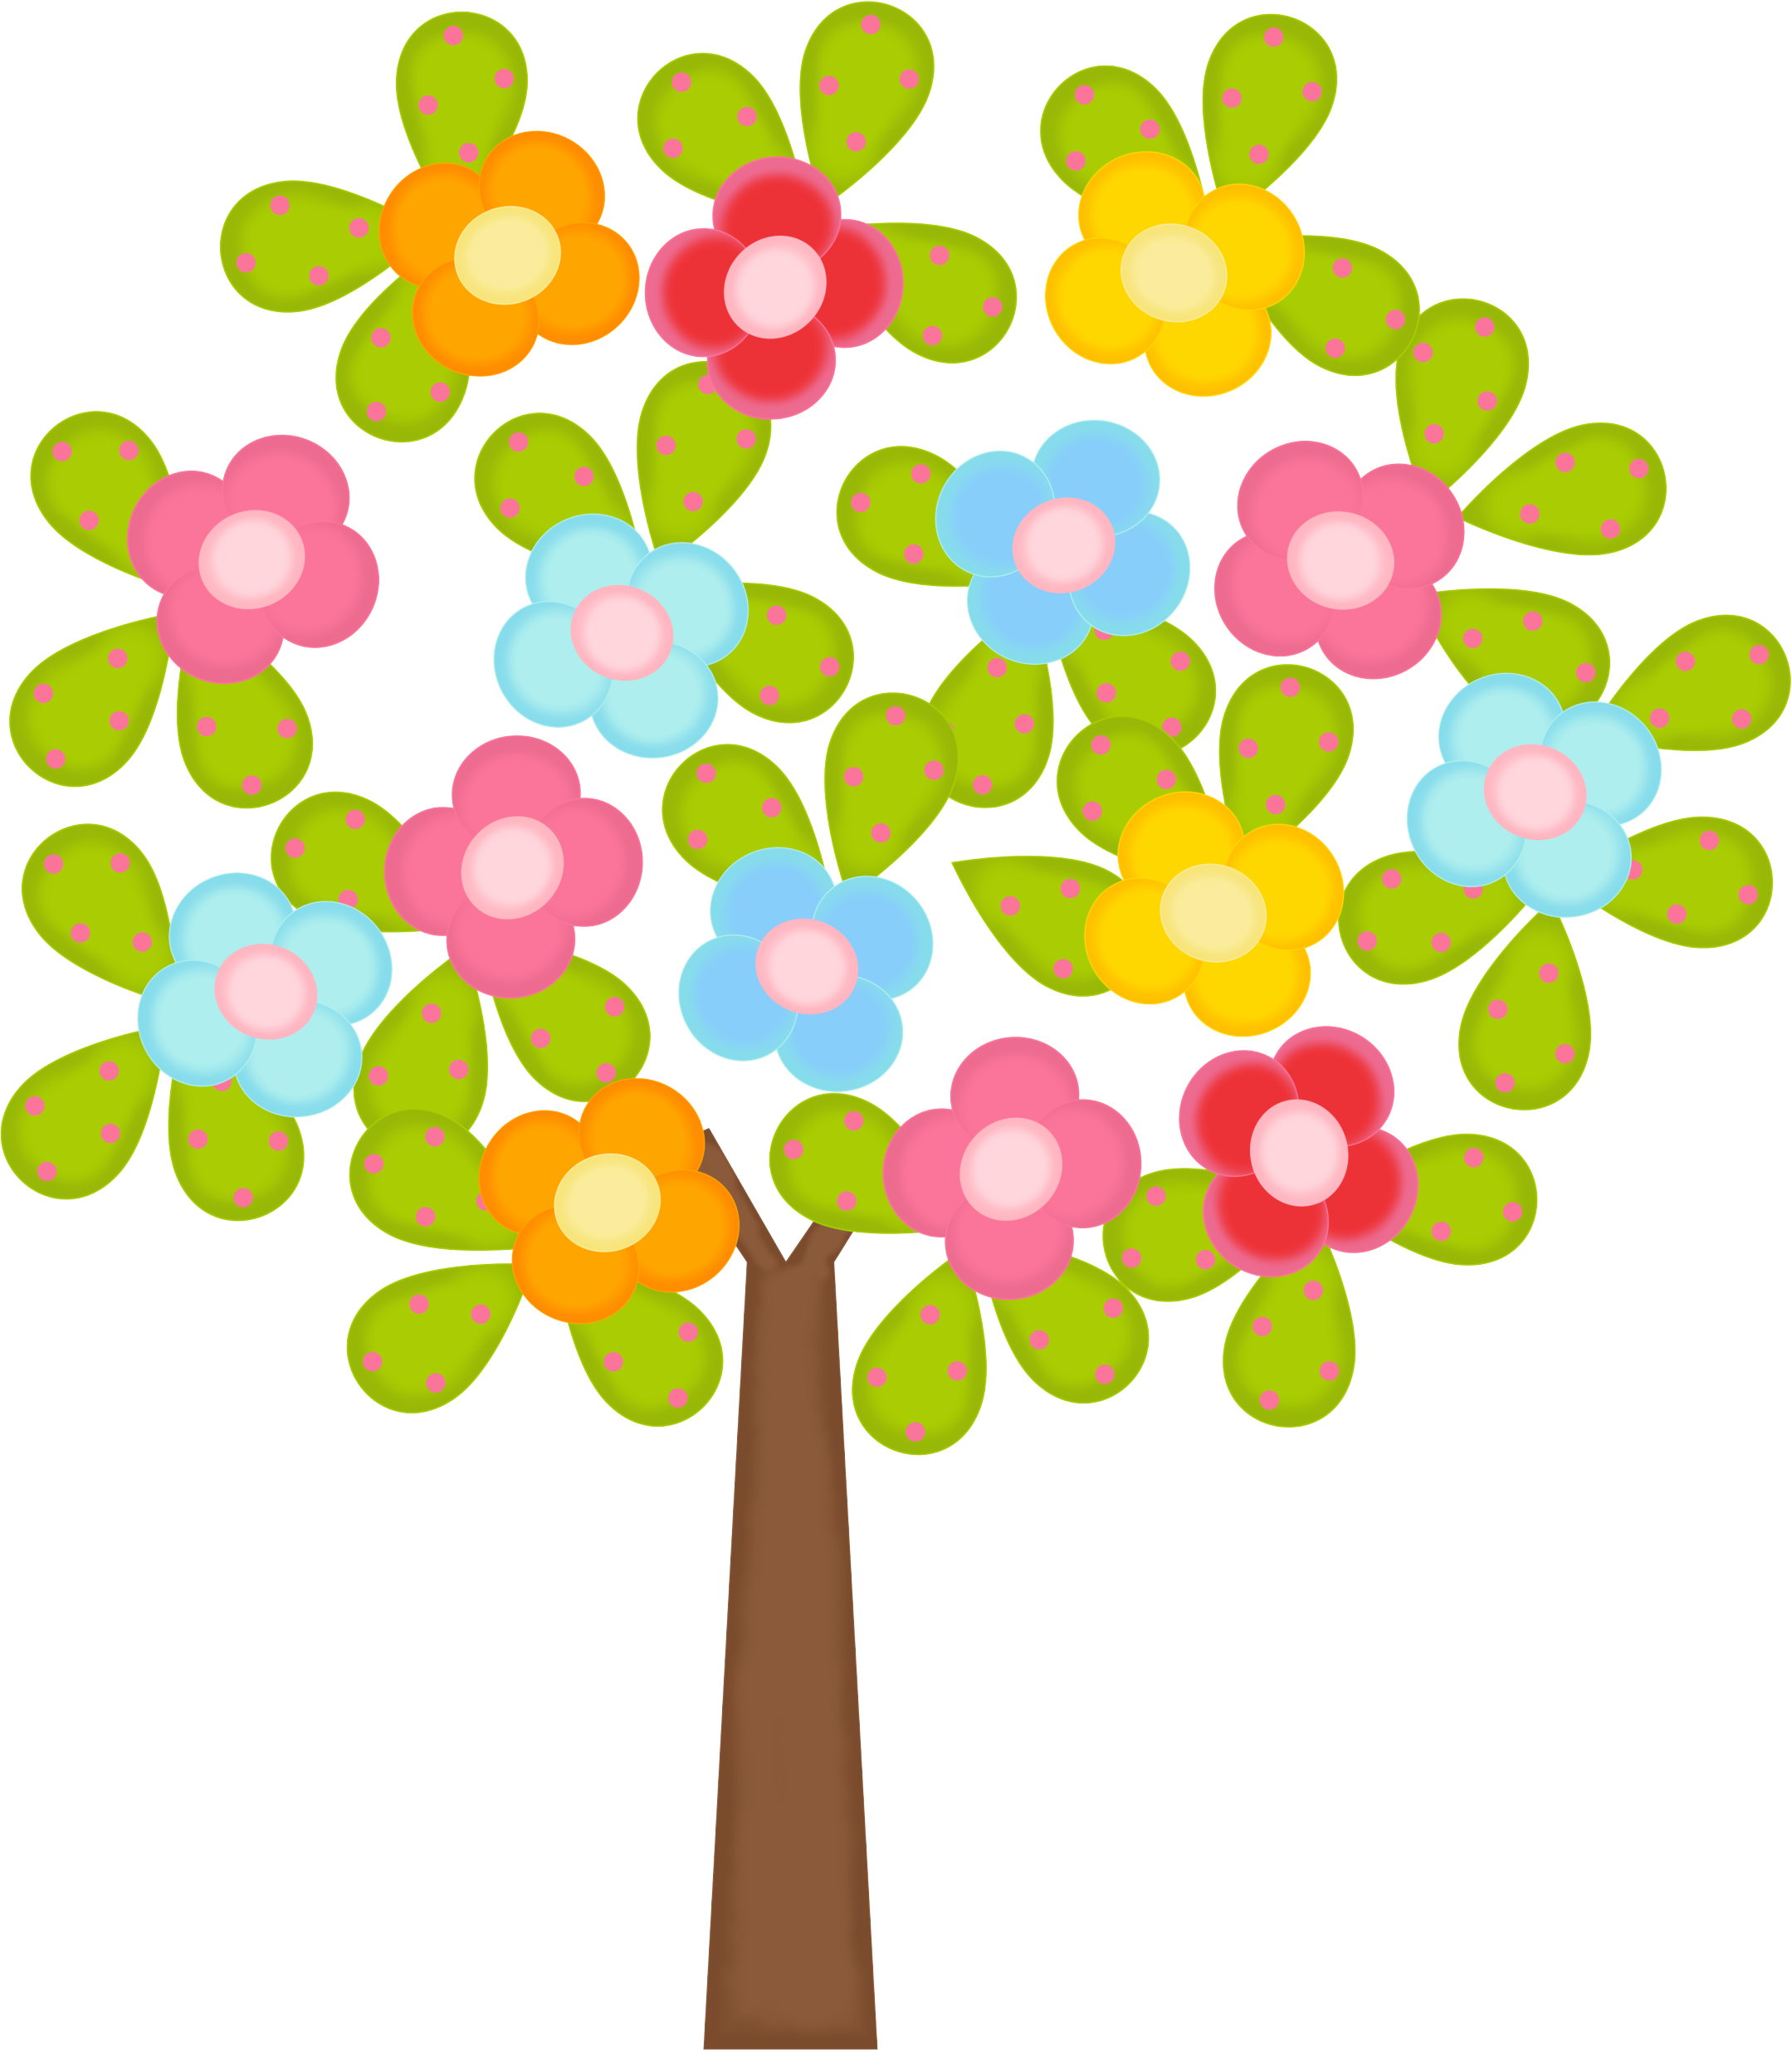 Tree with flowers clipart png free download Photo by @daniellemoraesfalcao - Minus | Adibujos cute | Pinterest ... png free download